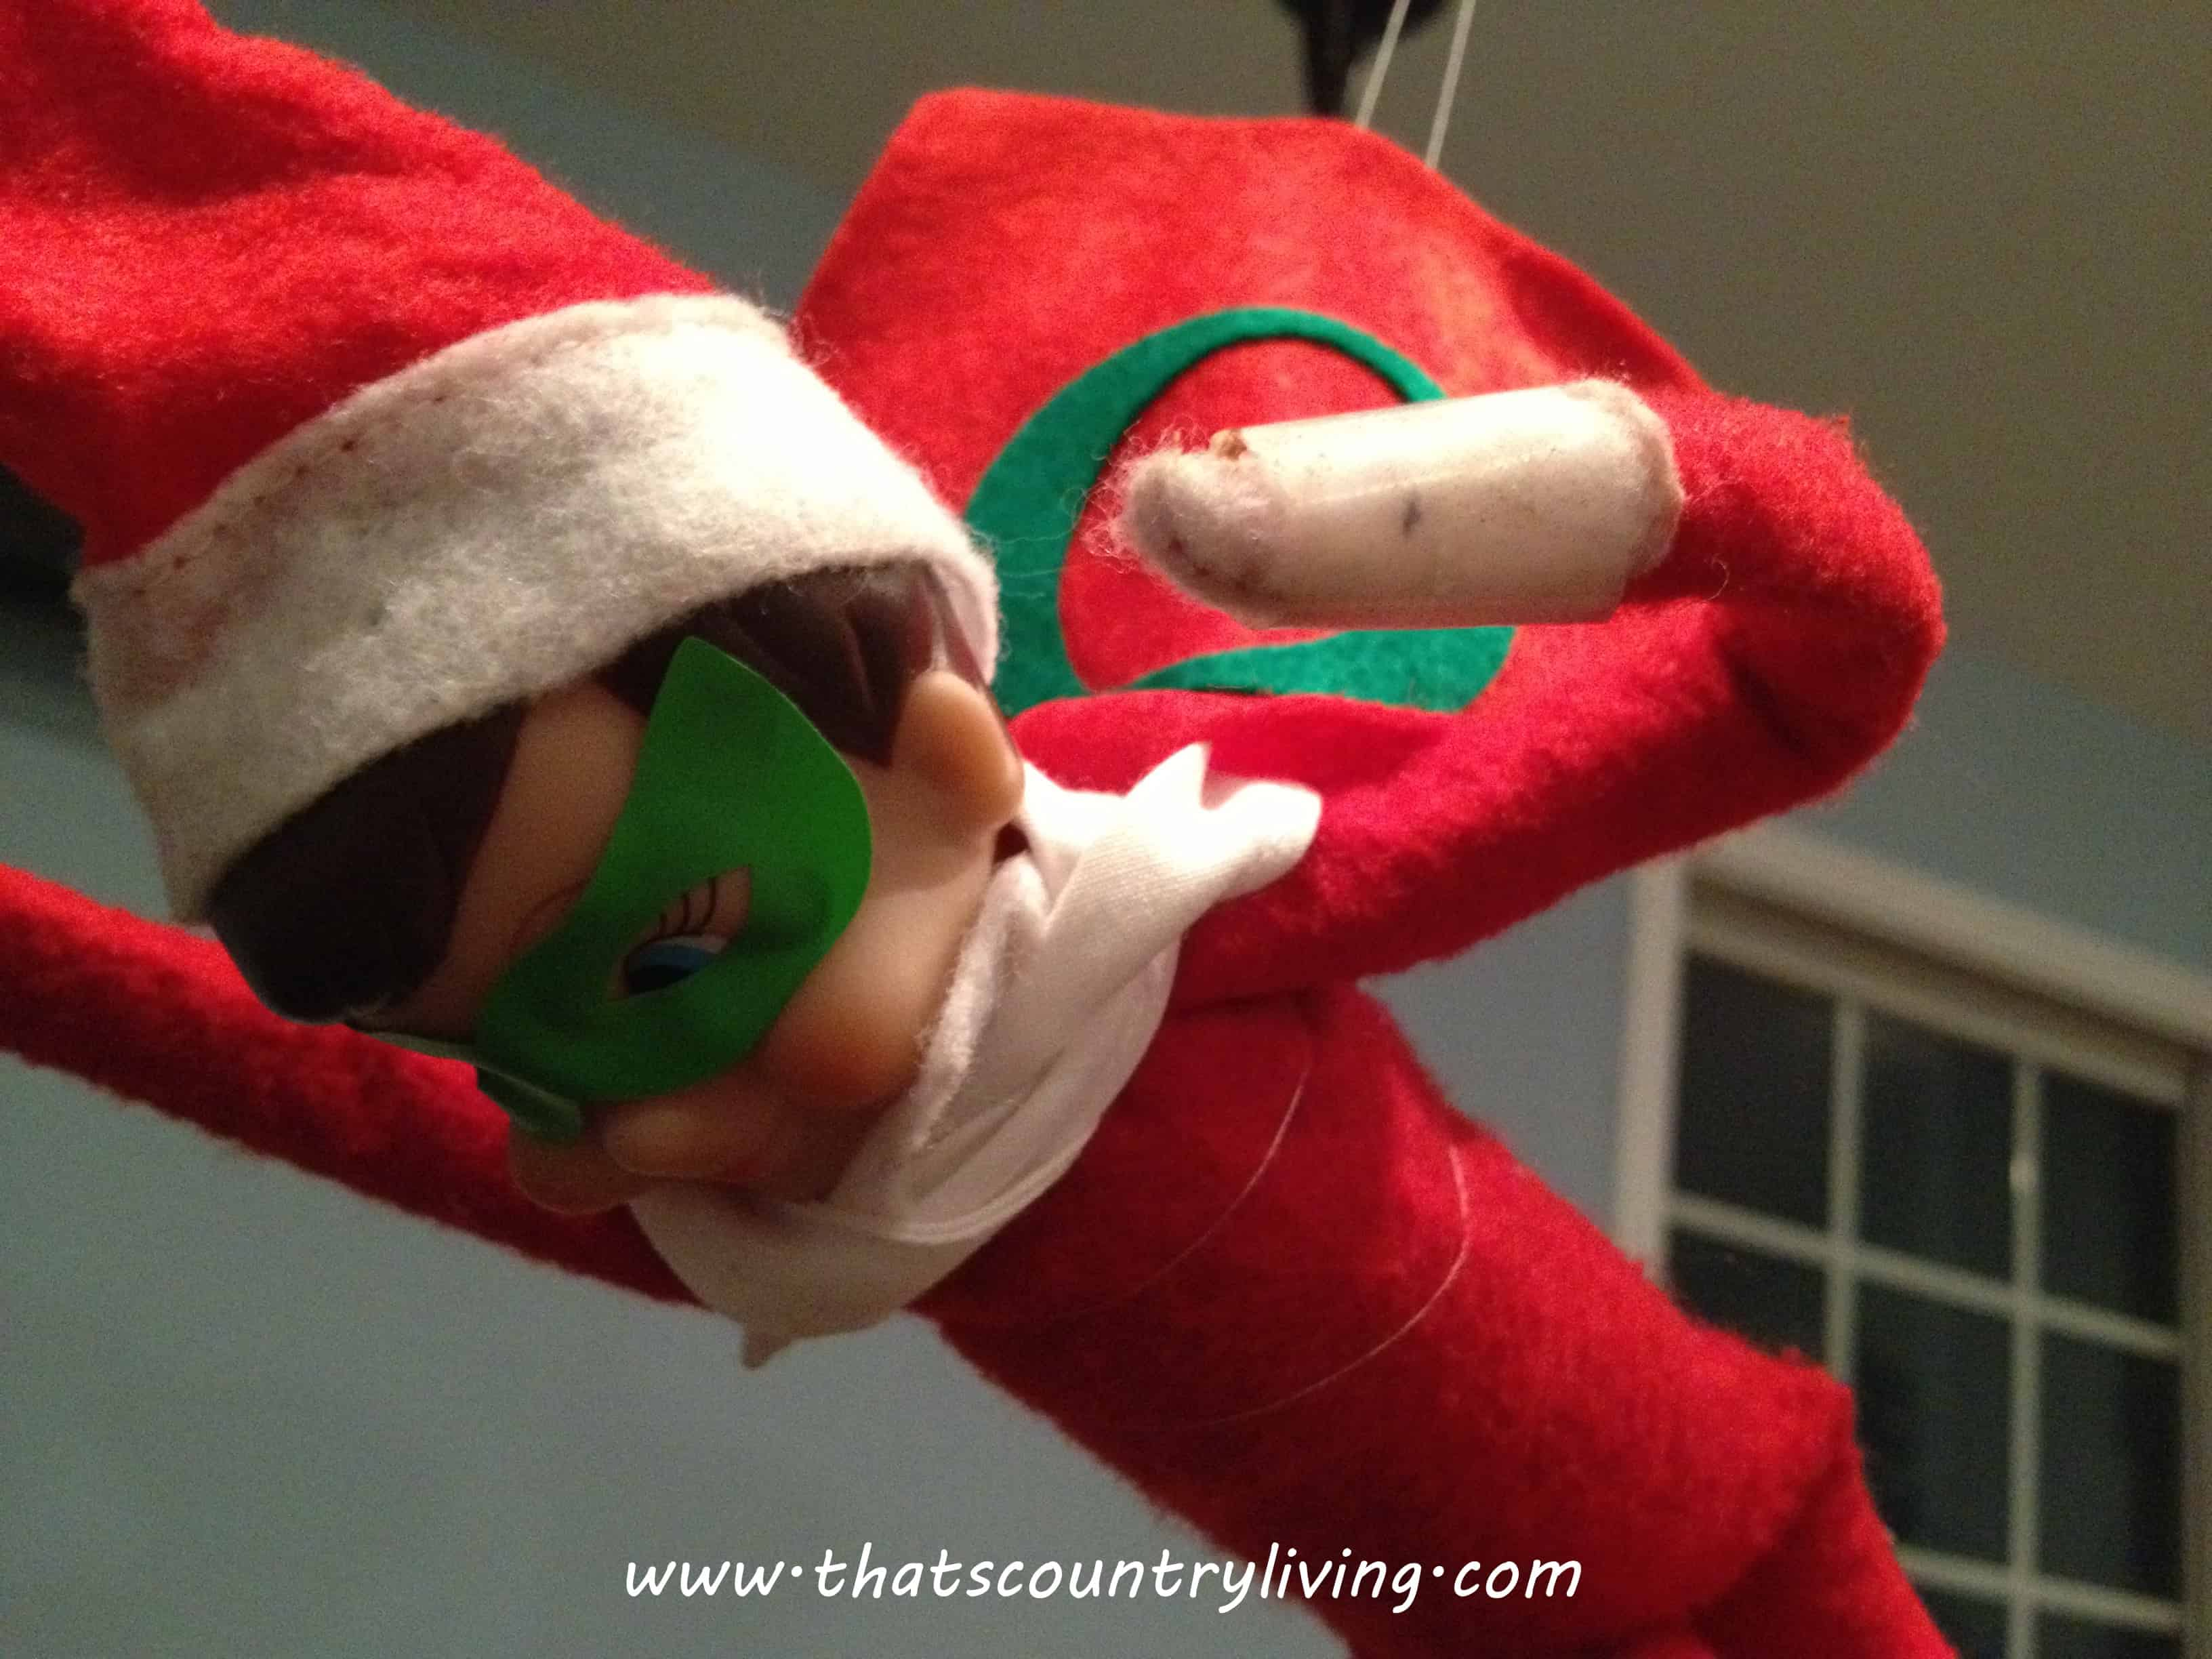 Dec 02,  · The Elf on the Shelf - the latest in holiday traditions - is about to find his way into homes across the country around Thanksgiving. For those who aren't familiar, the Elf on the Shelf is a scout.